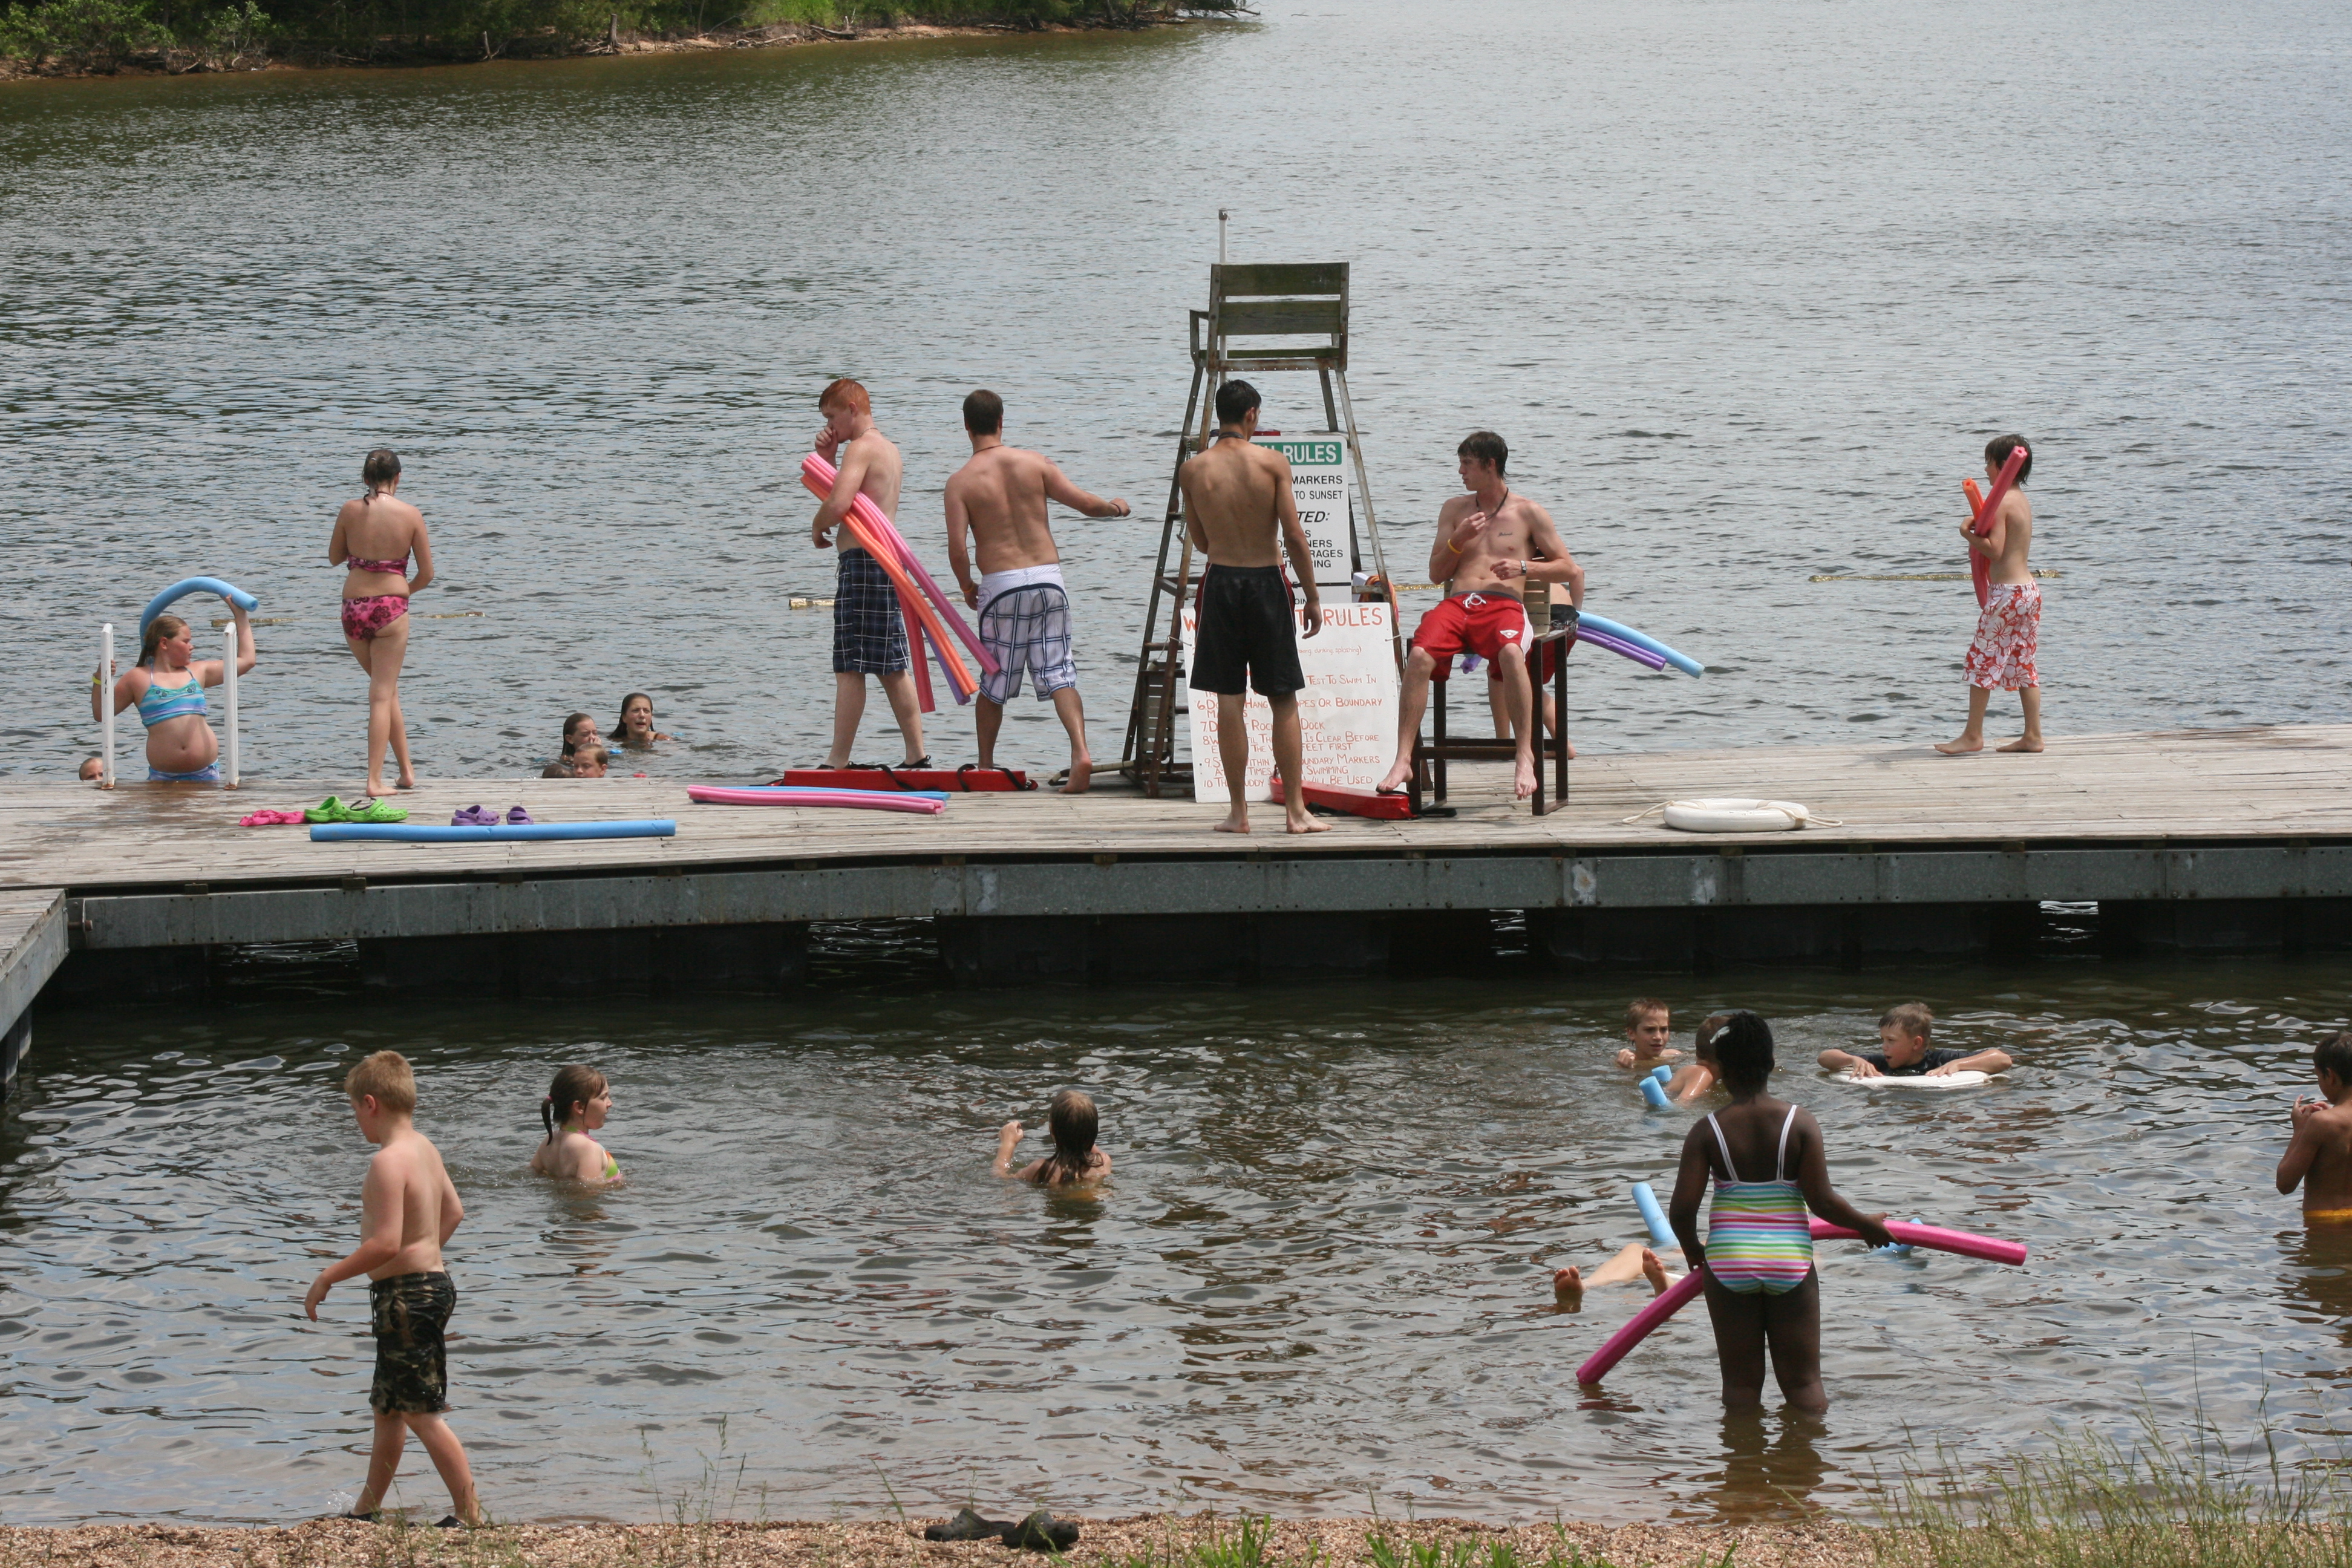 kids on the swim dock and swimming in the lake